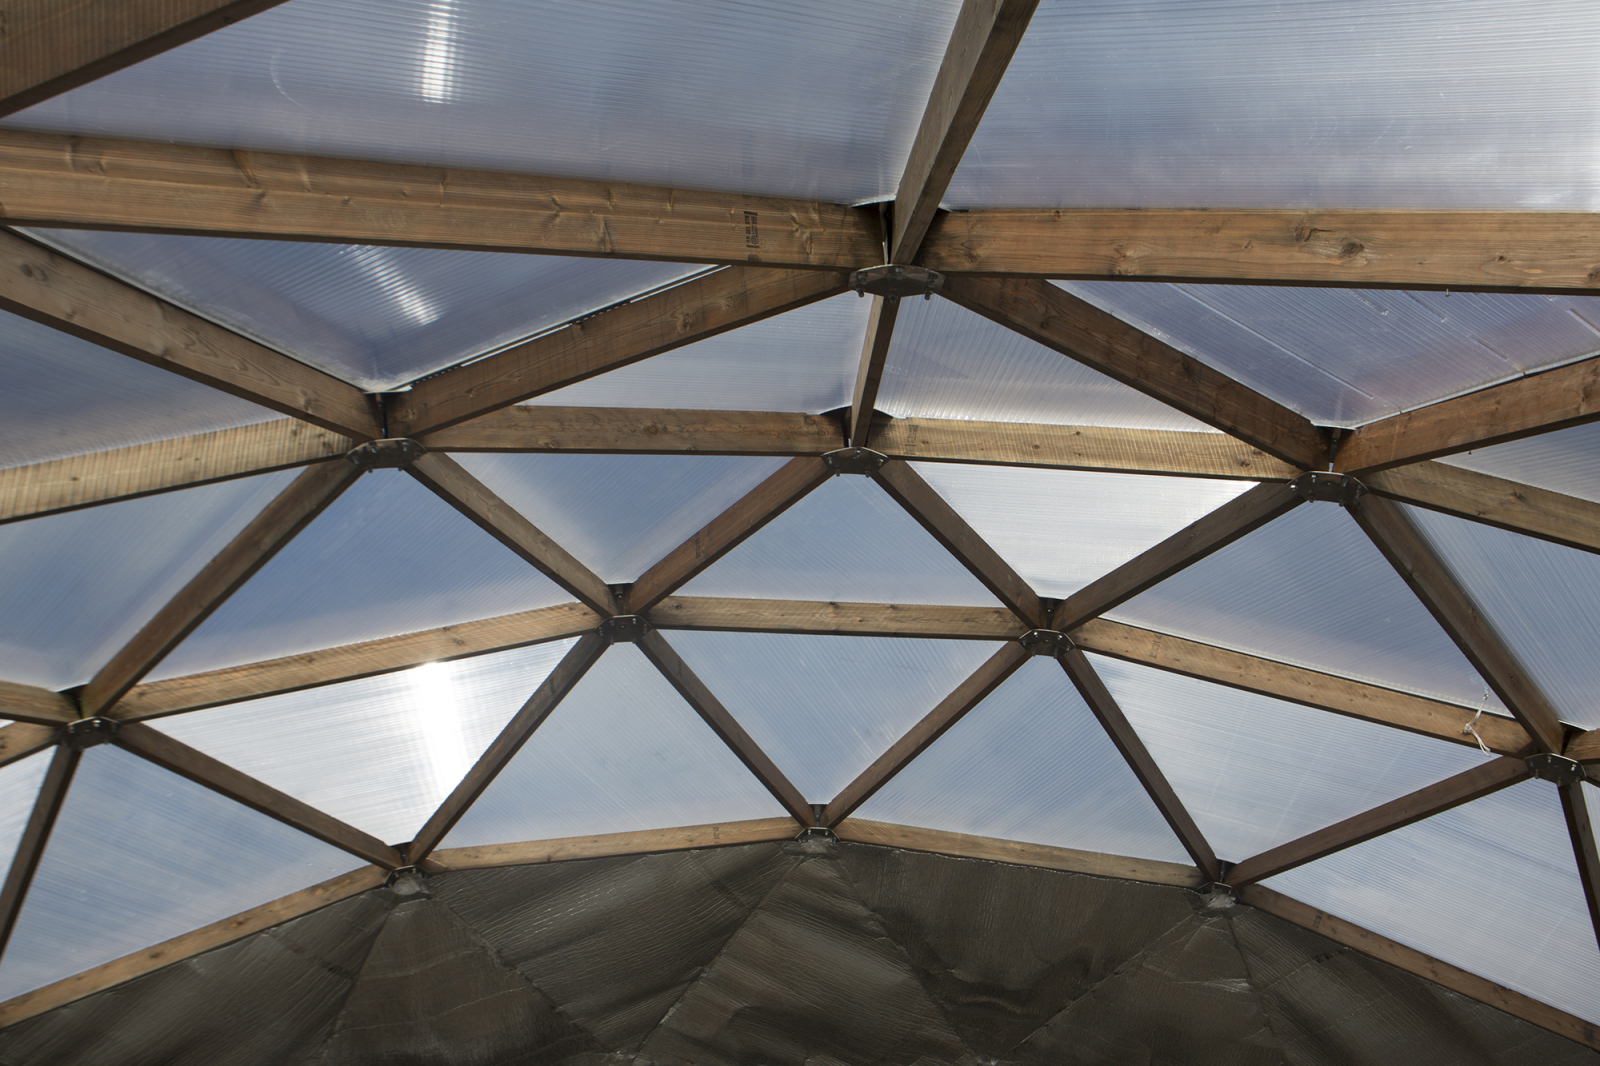 The roof of the Growing North greenhouse in Naujaat, Nunavut. Photo by Growing North